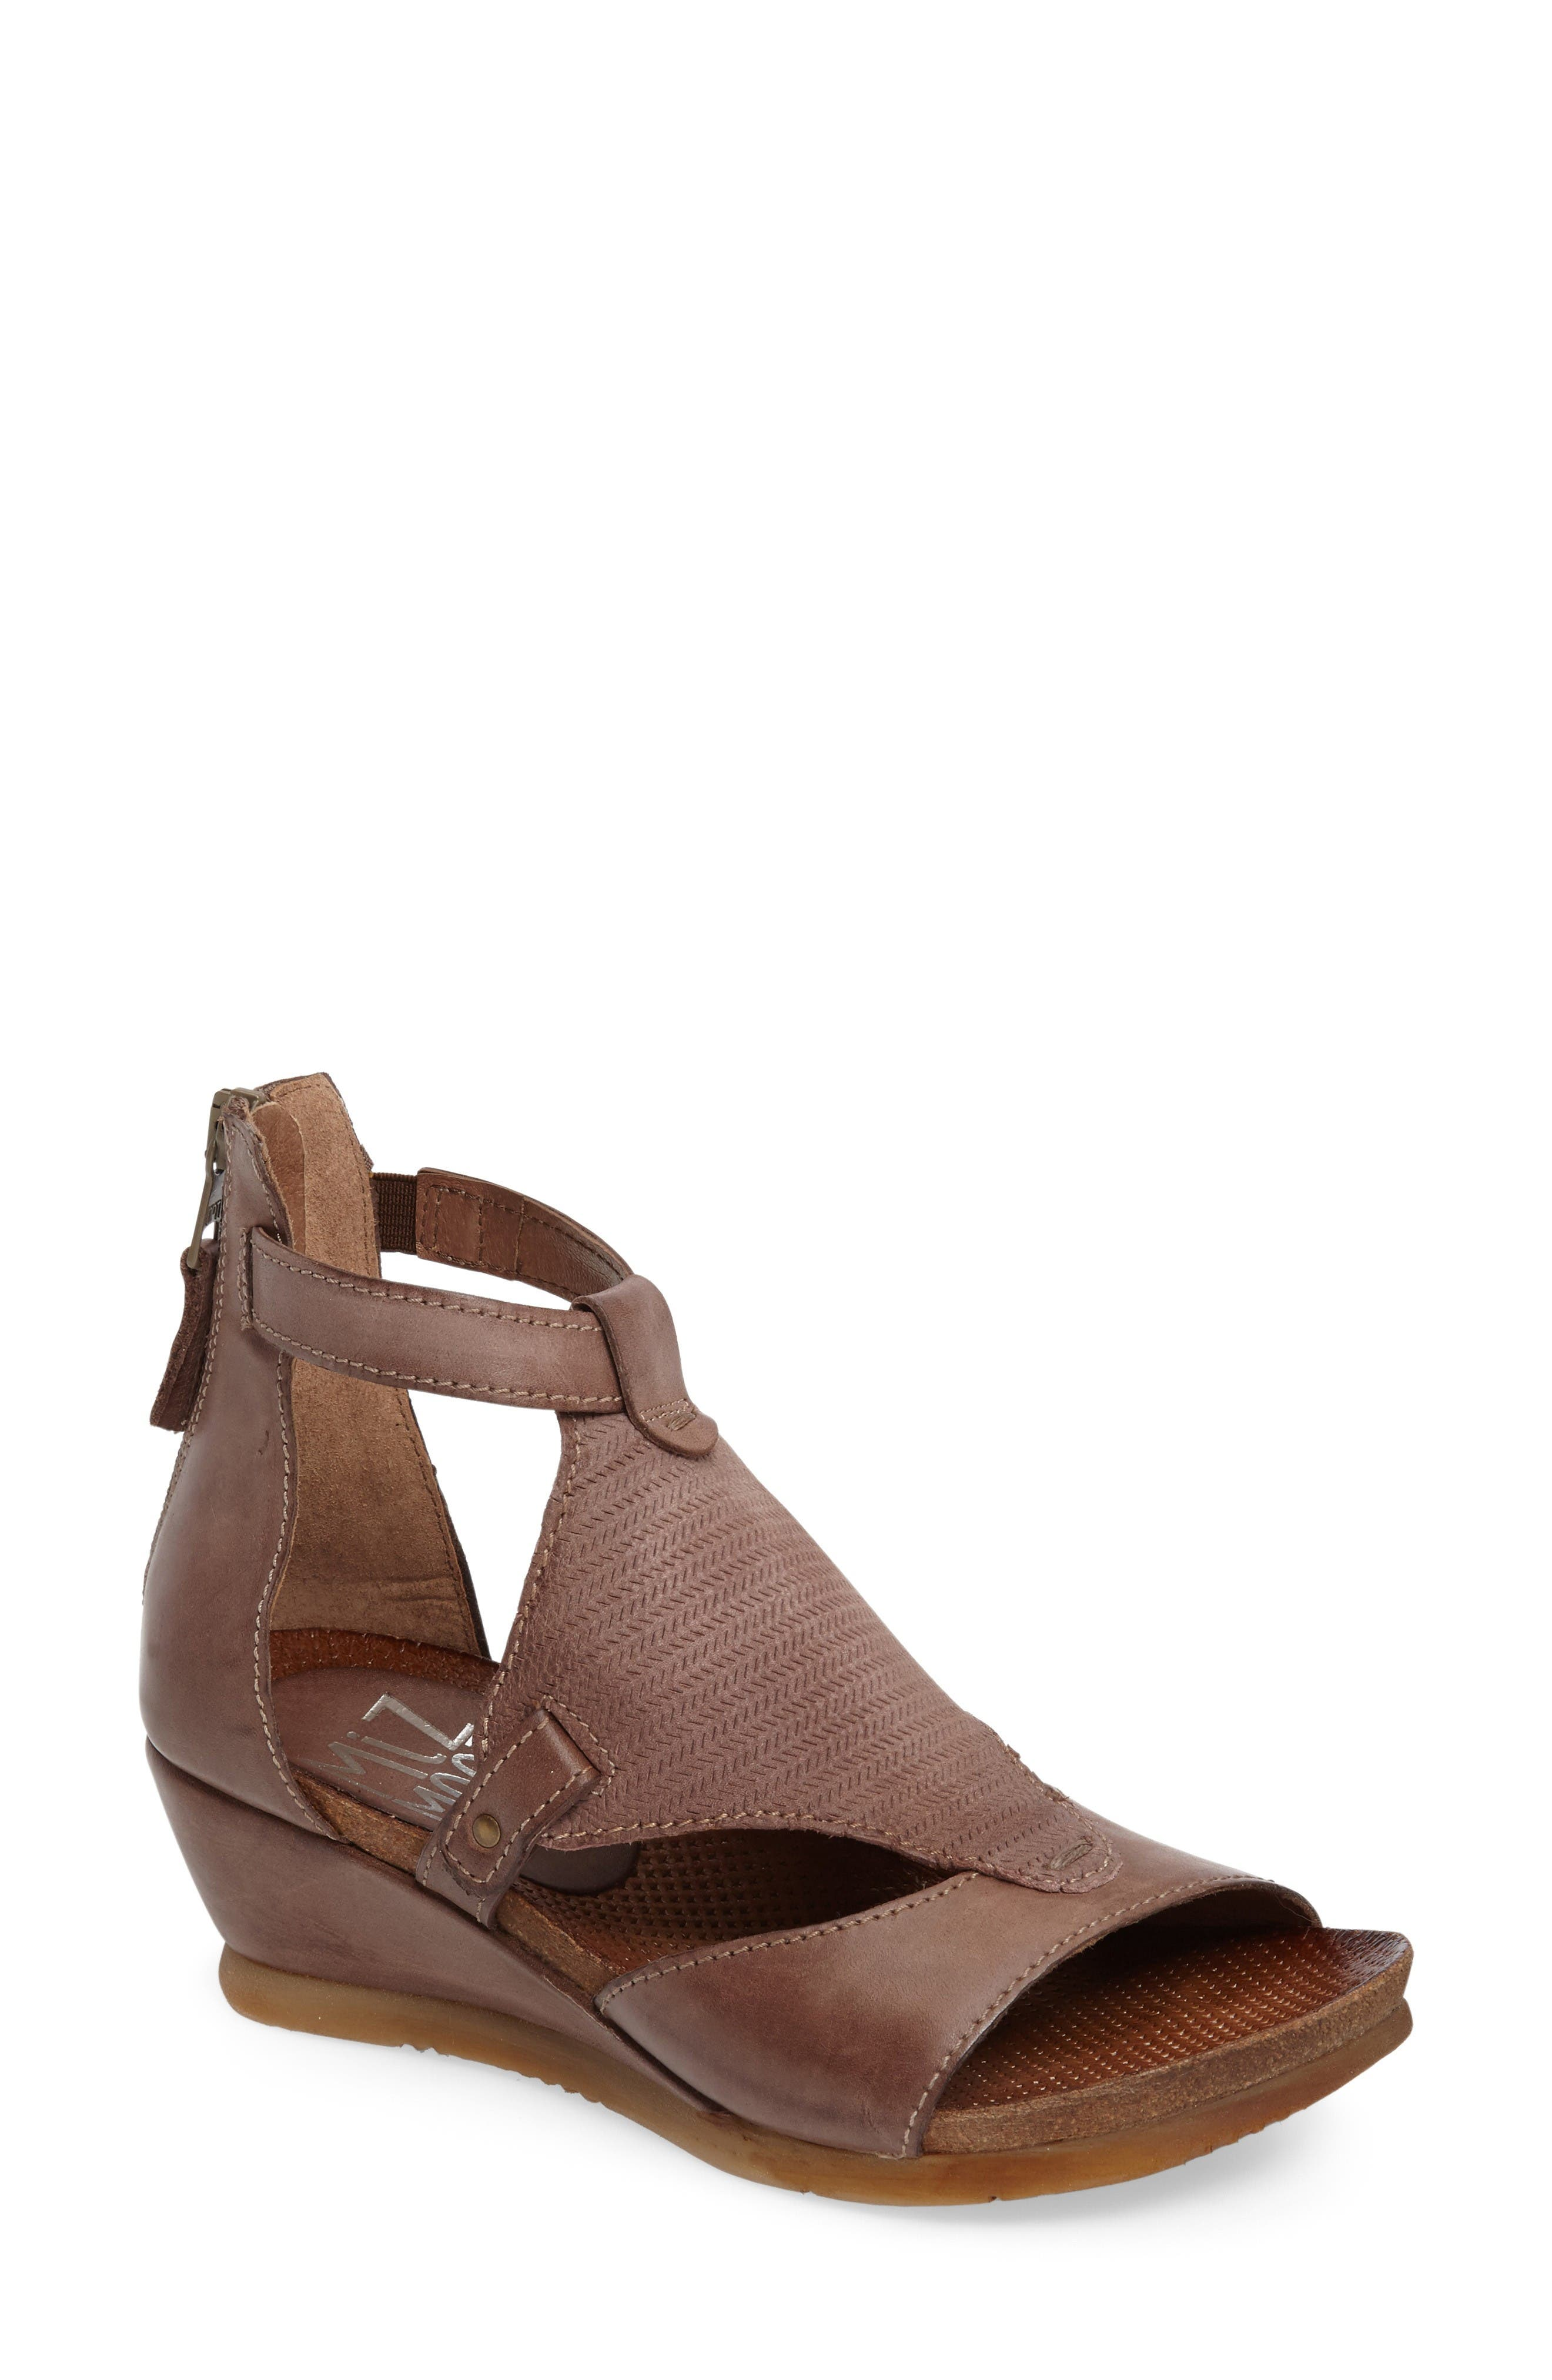 Miz Mooz Maisie Wedge Sandal (Women)